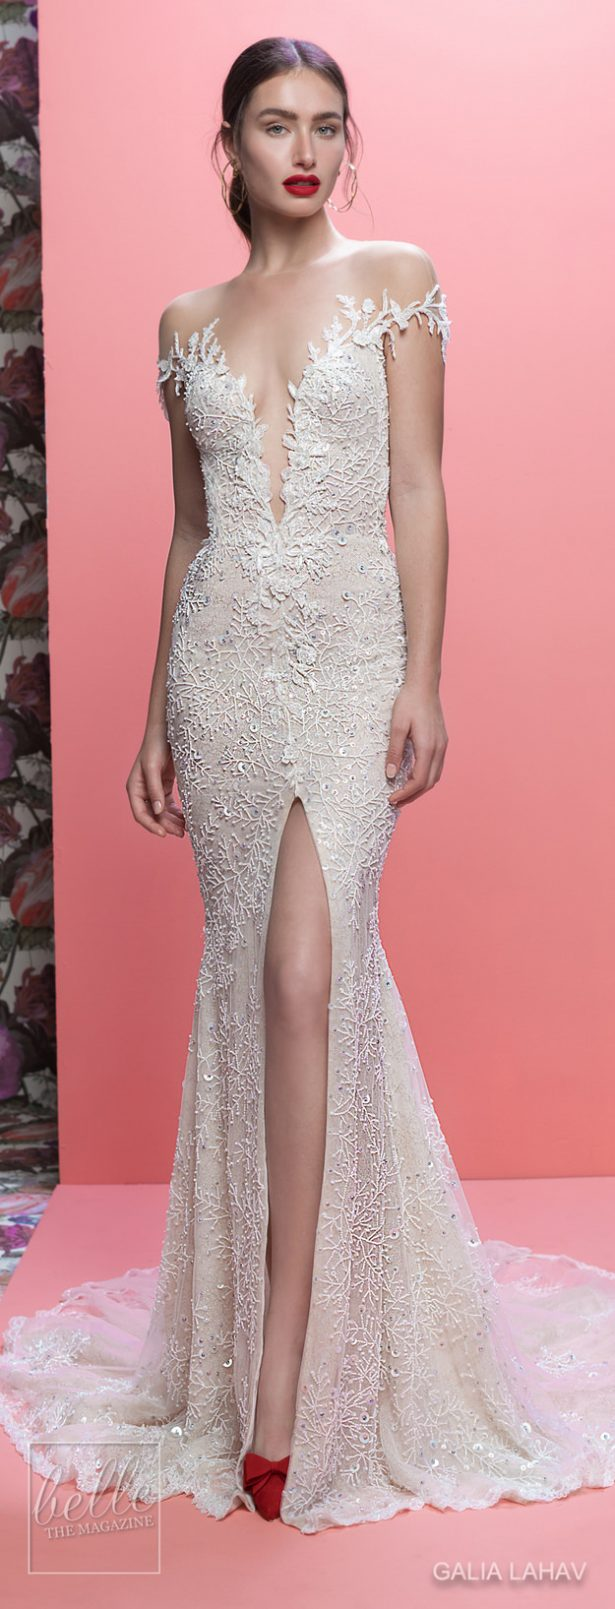 Wedding Dresses By Galia Lahav Couture Bridal Spring 2019 Collection- Queen of Hearts - Marleigh